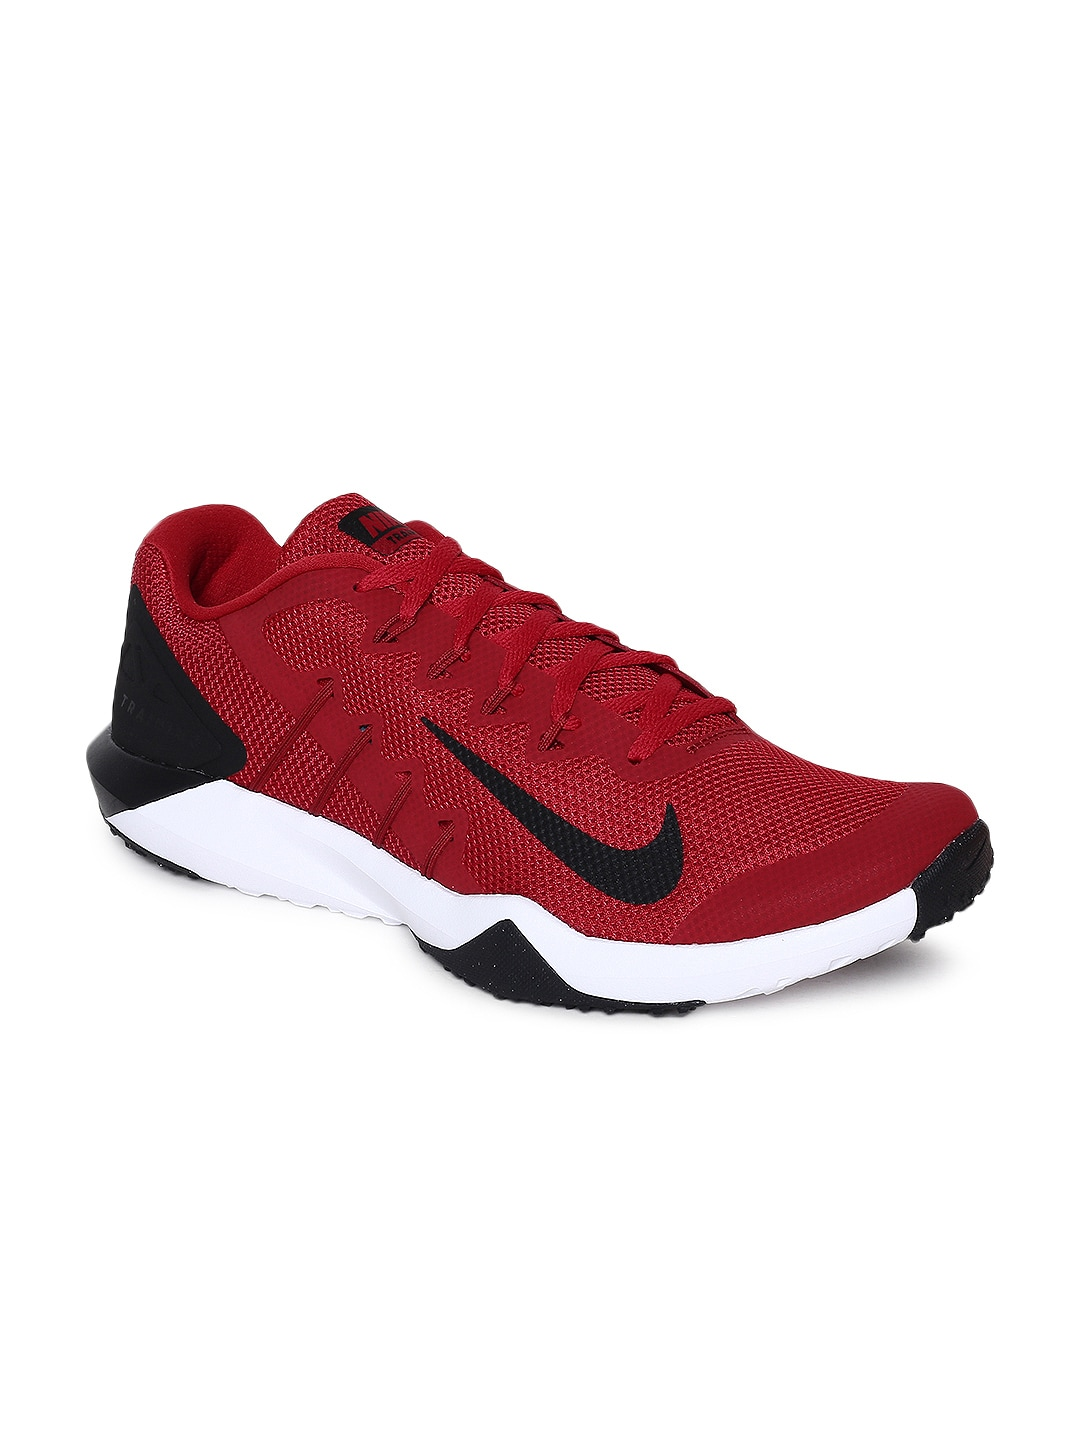 de4d4fd68d08 Sports Shoes for Men - Buy Men Sports Shoes Online in India - Myntra